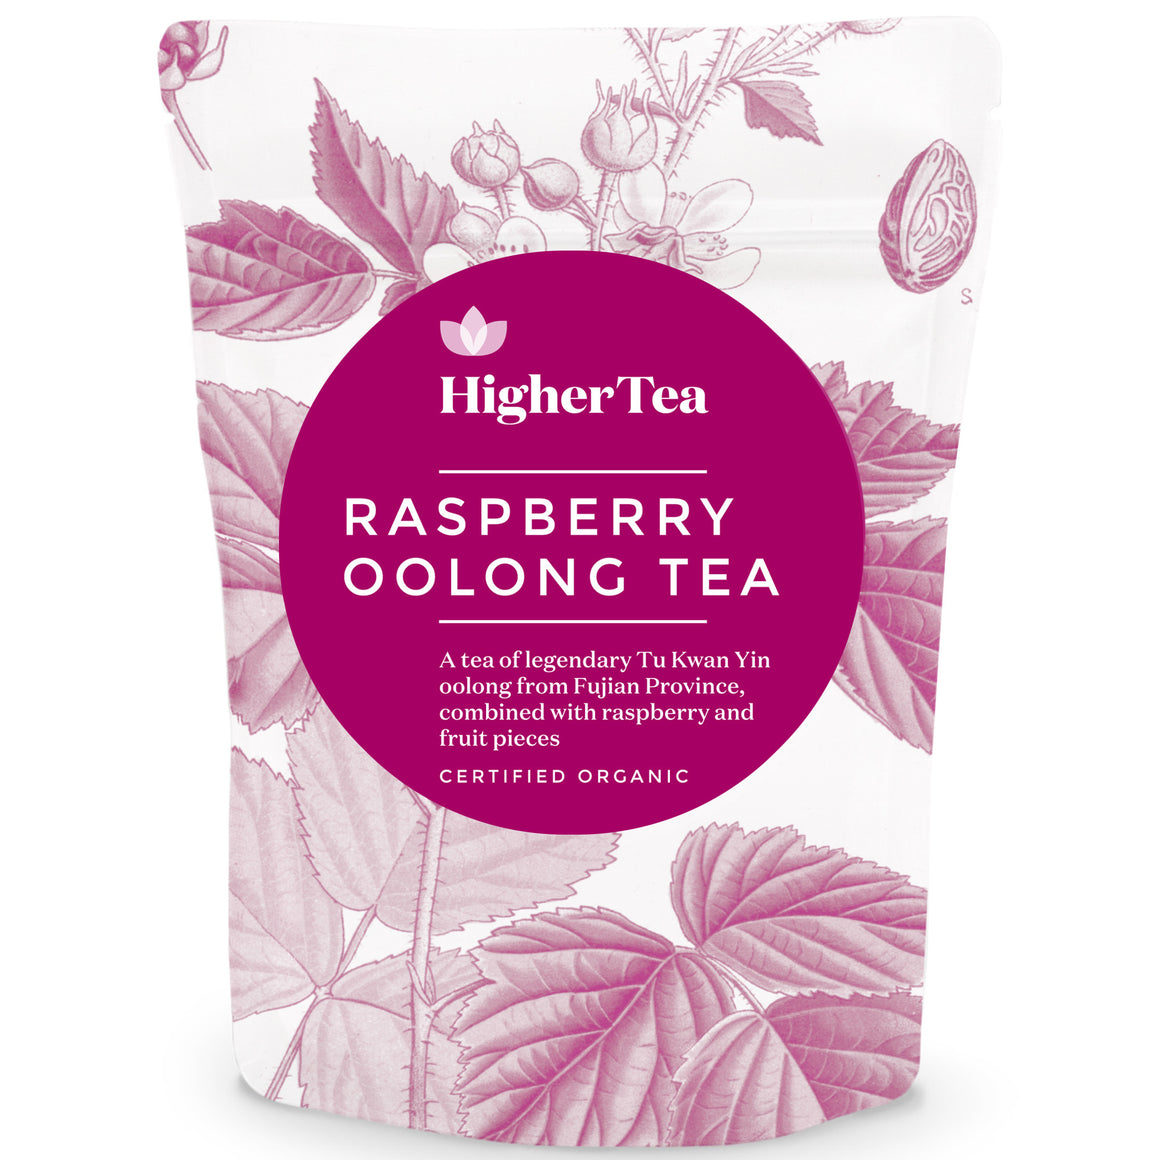 Raspberry Oolong Tea